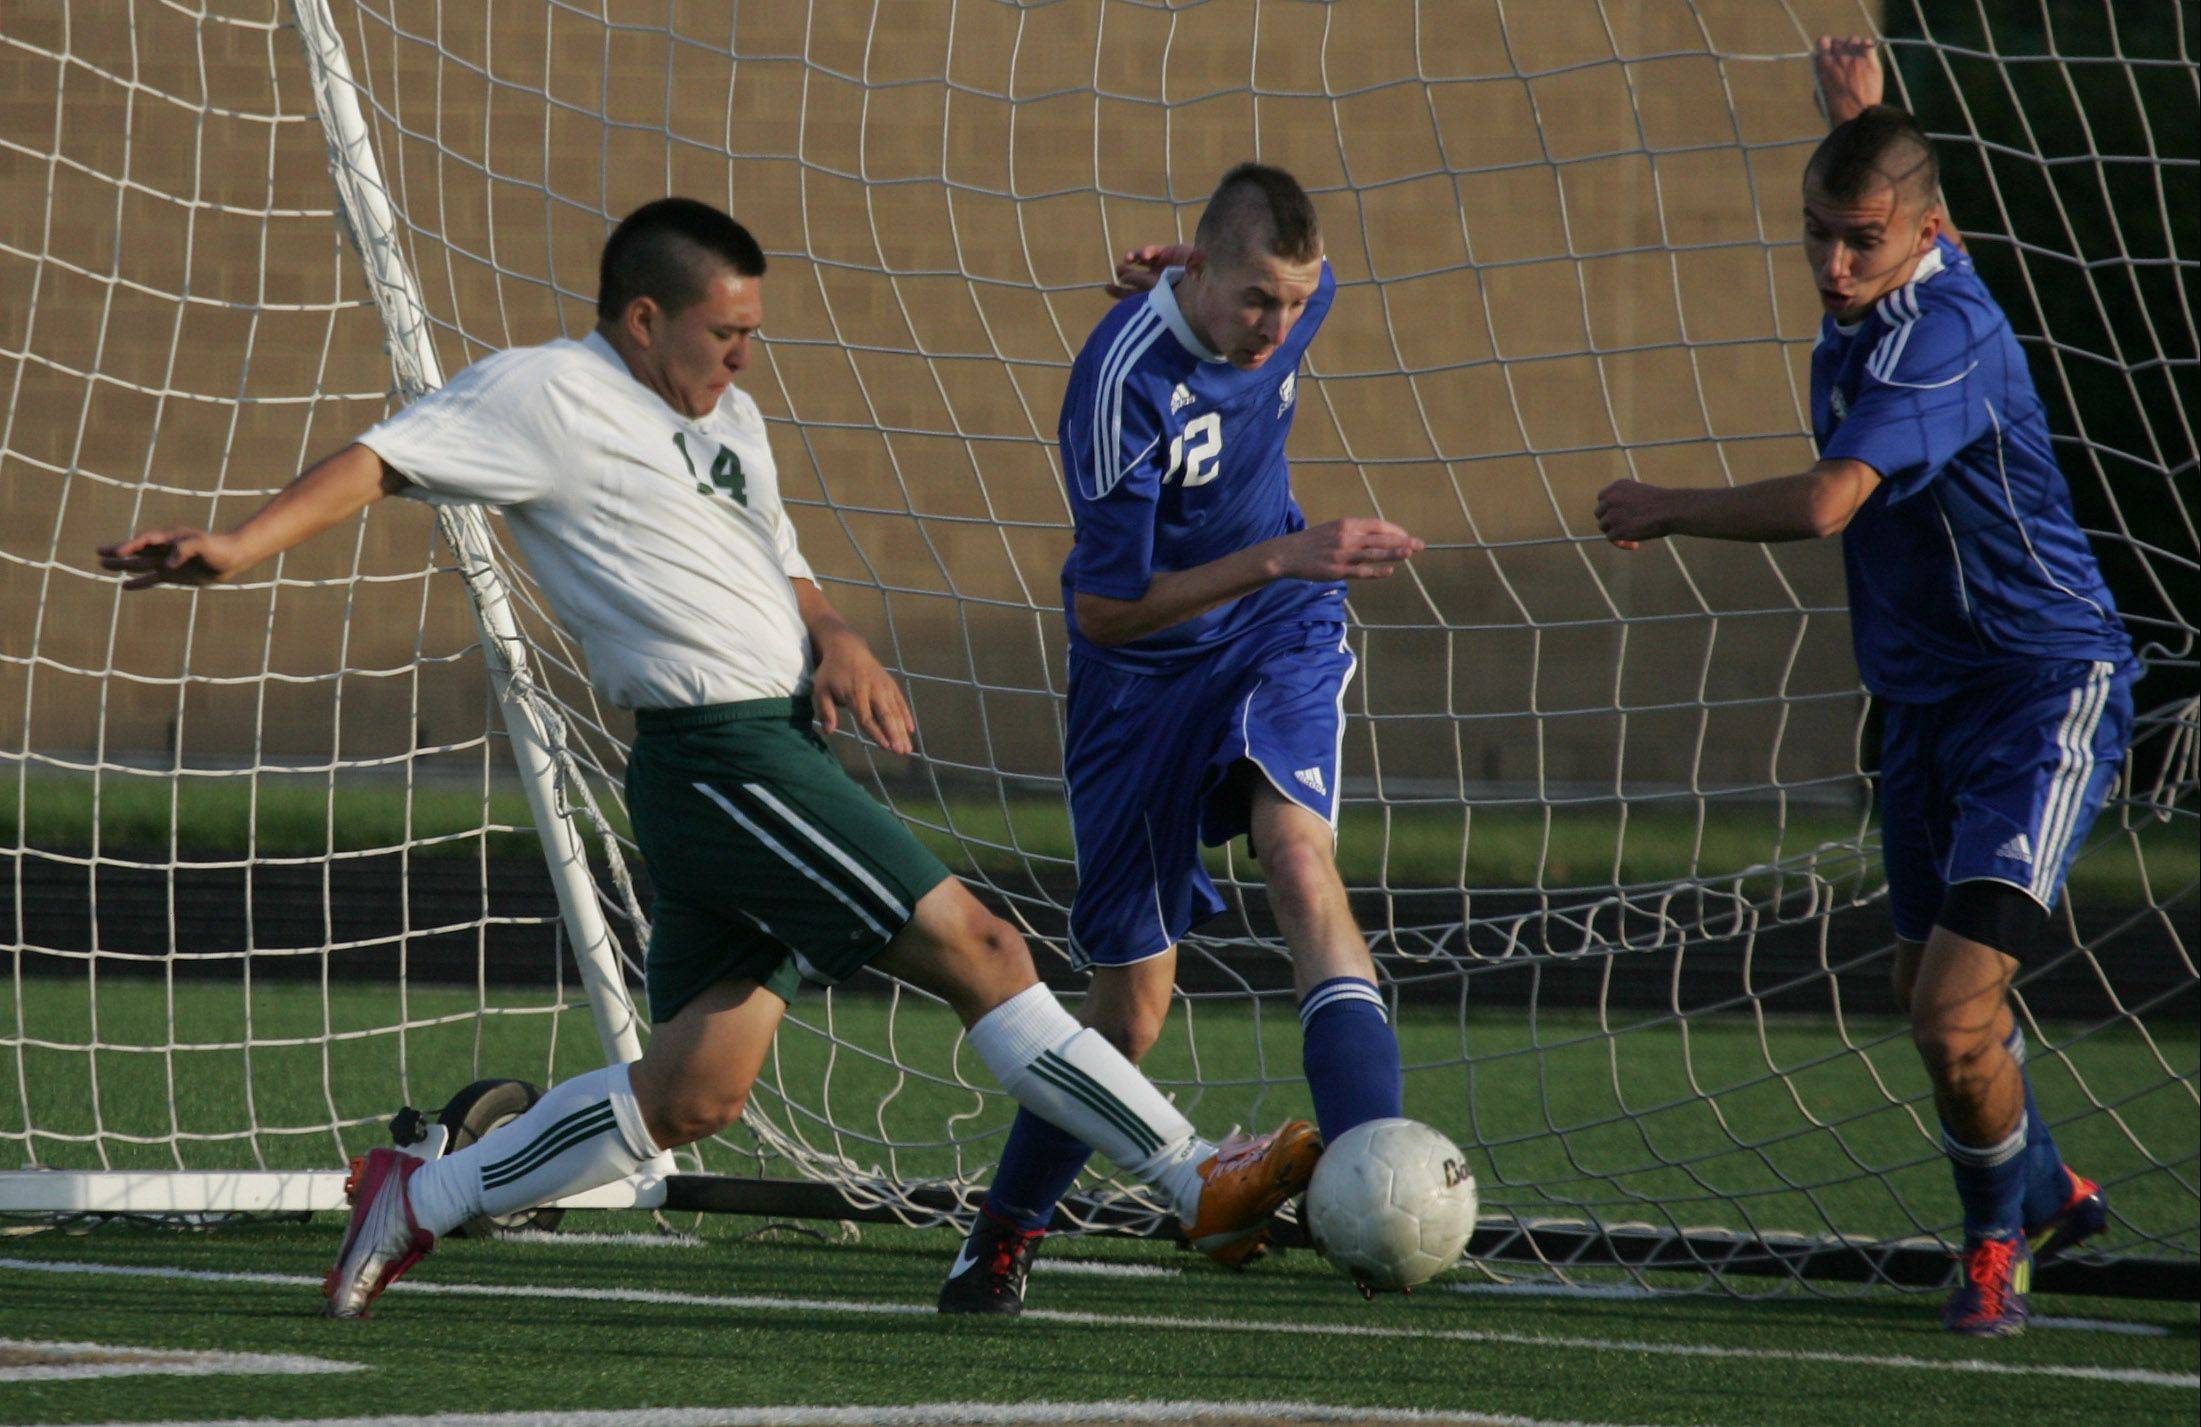 Stevenson�s Ceasar Navarro scores the first goal of the game between Lake Zurich�s James Blasko and Kevin Loch during Class 3A boys regional semifinal play Tuesday in Lincolnshire.